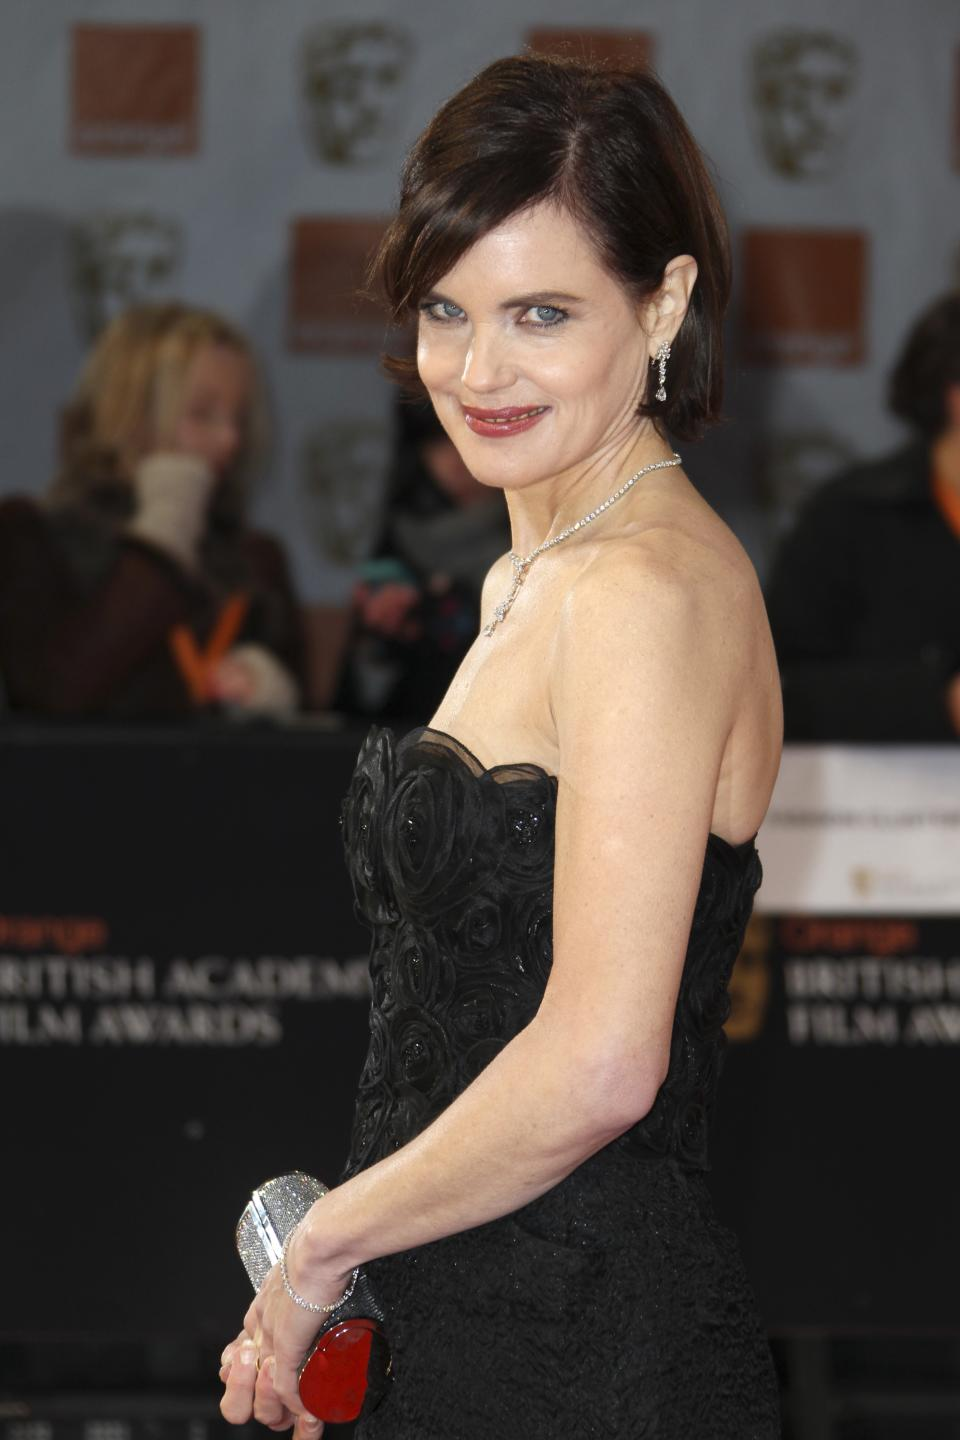 Actress Elizabeth McGovern arrives for the BAFTA Film Awards 2012, at The Royal Opera House in London, Sunday, Feb. 12, 2012. (AP Photo/Joel Ryan)